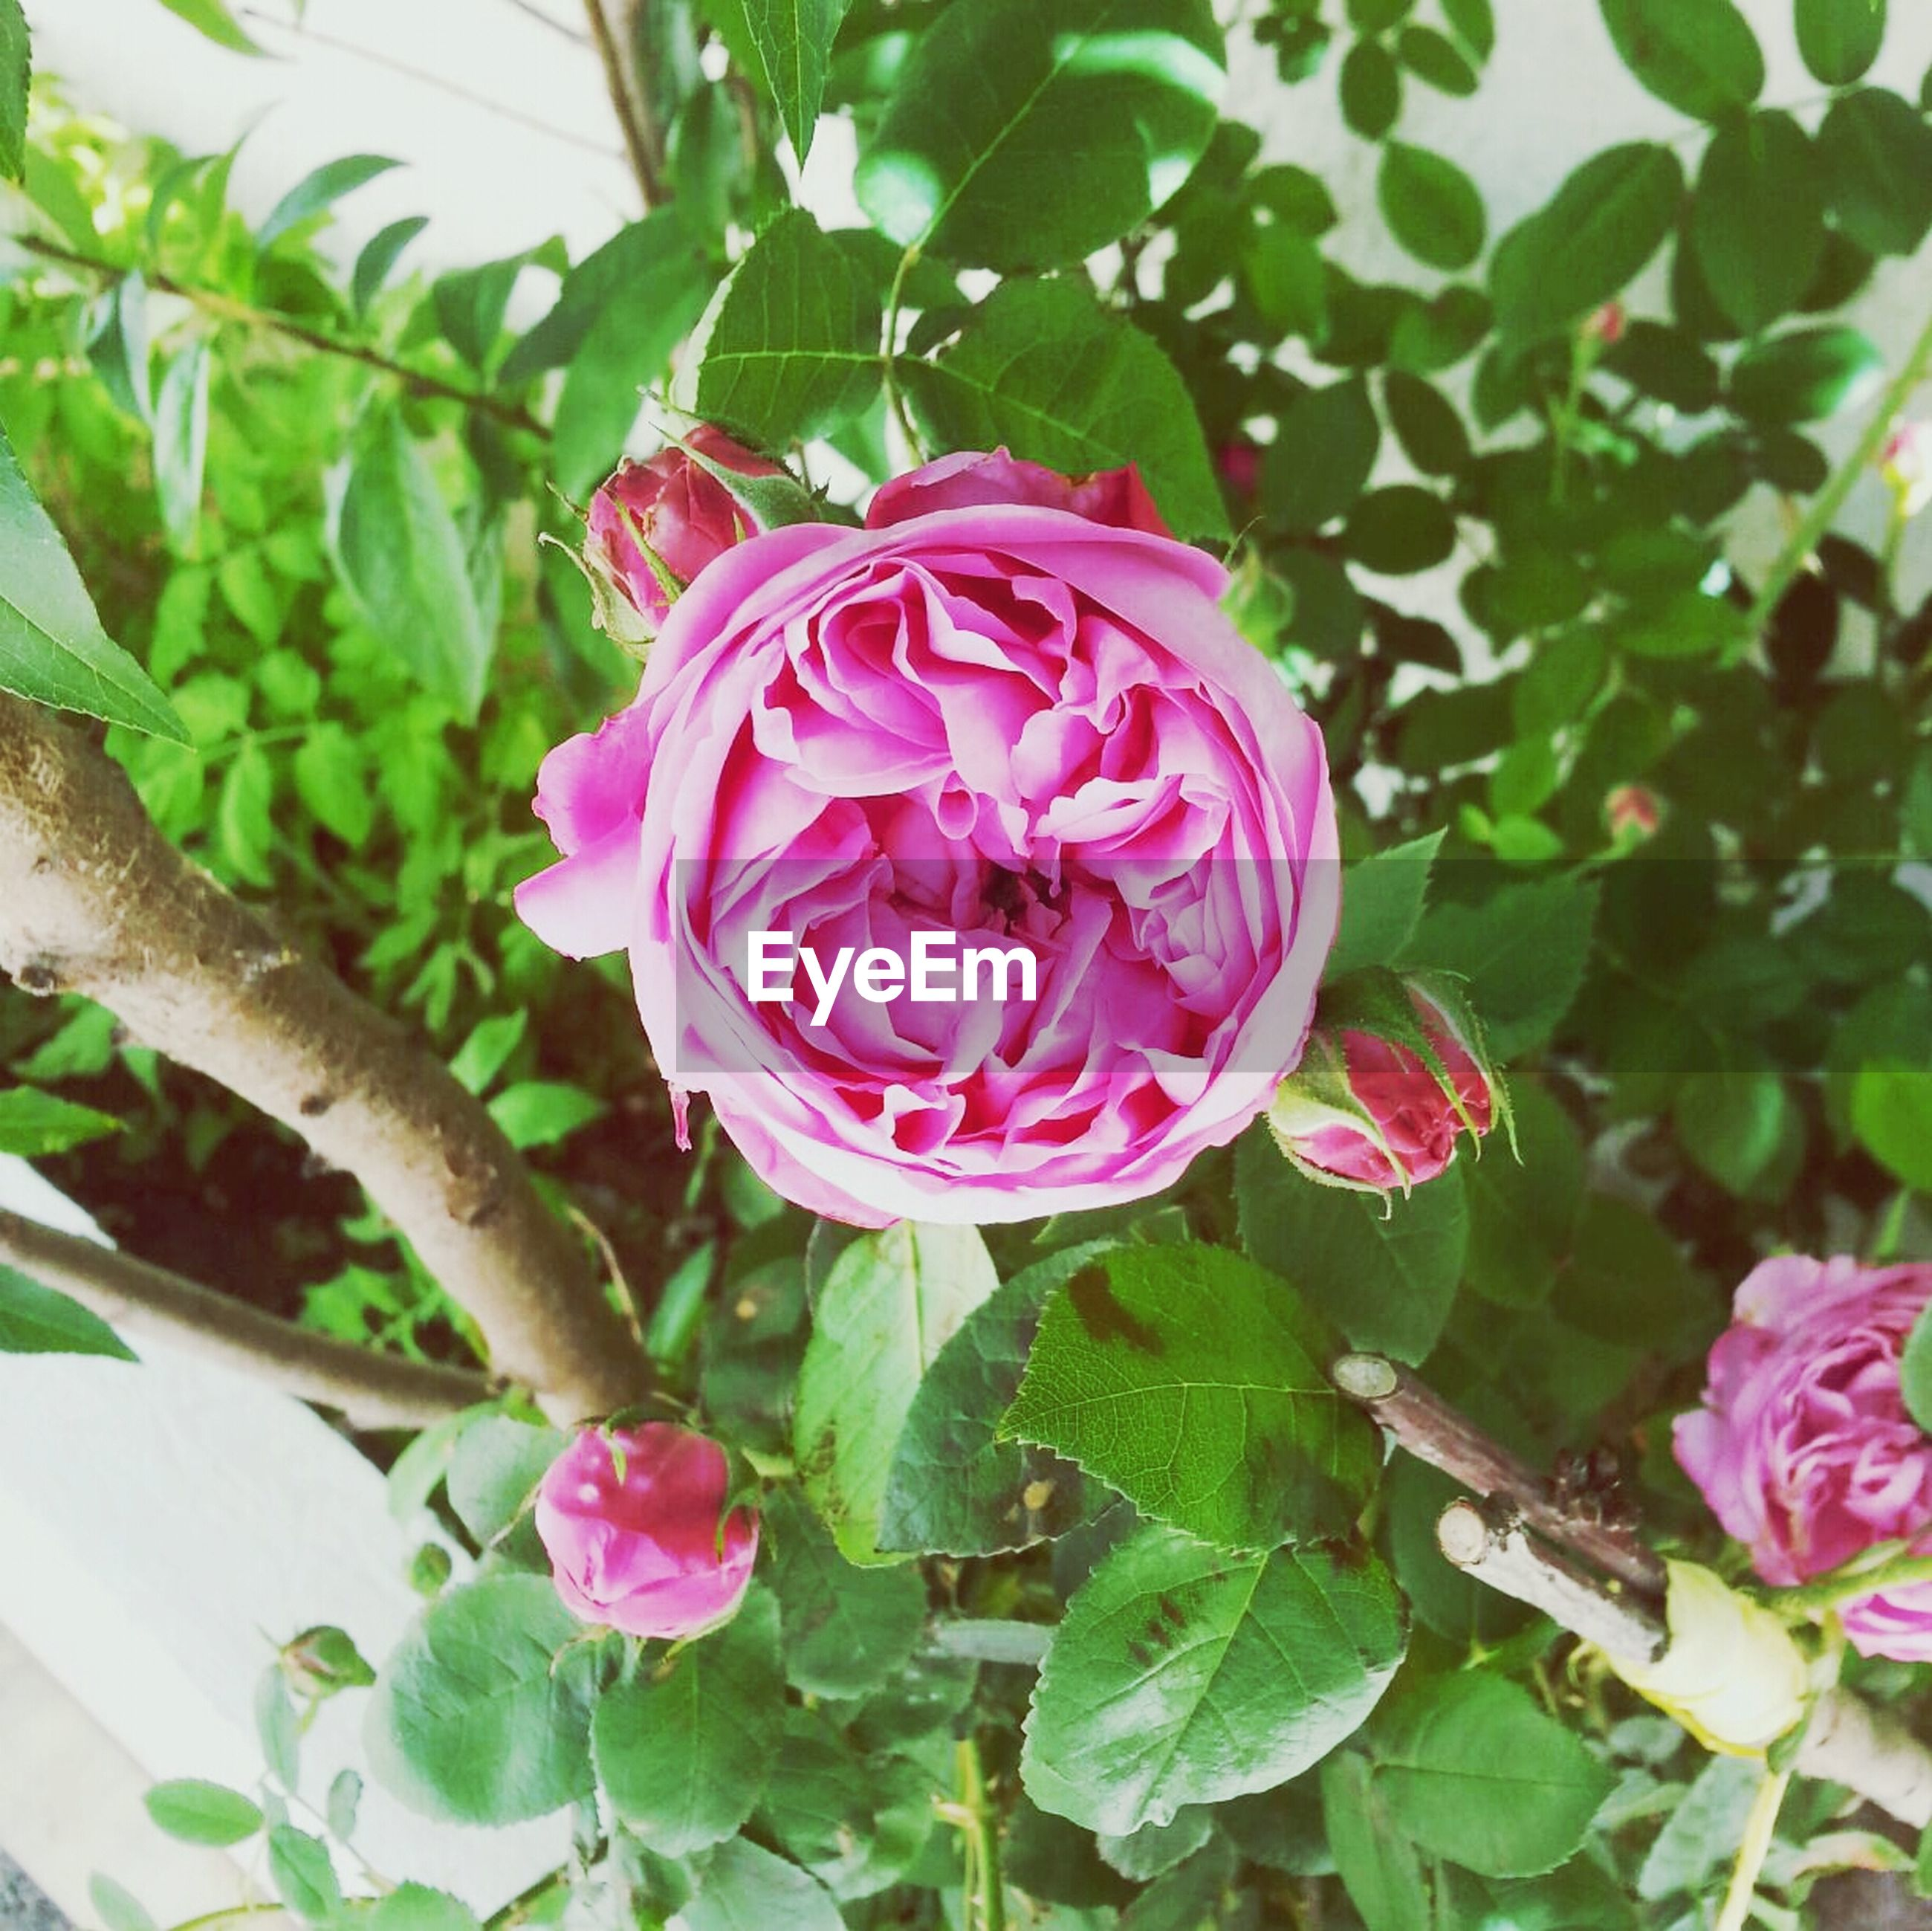 flower, freshness, petal, fragility, growth, pink color, leaf, flower head, beauty in nature, plant, rose - flower, nature, close-up, blooming, pink, green color, blossom, in bloom, outdoors, botany